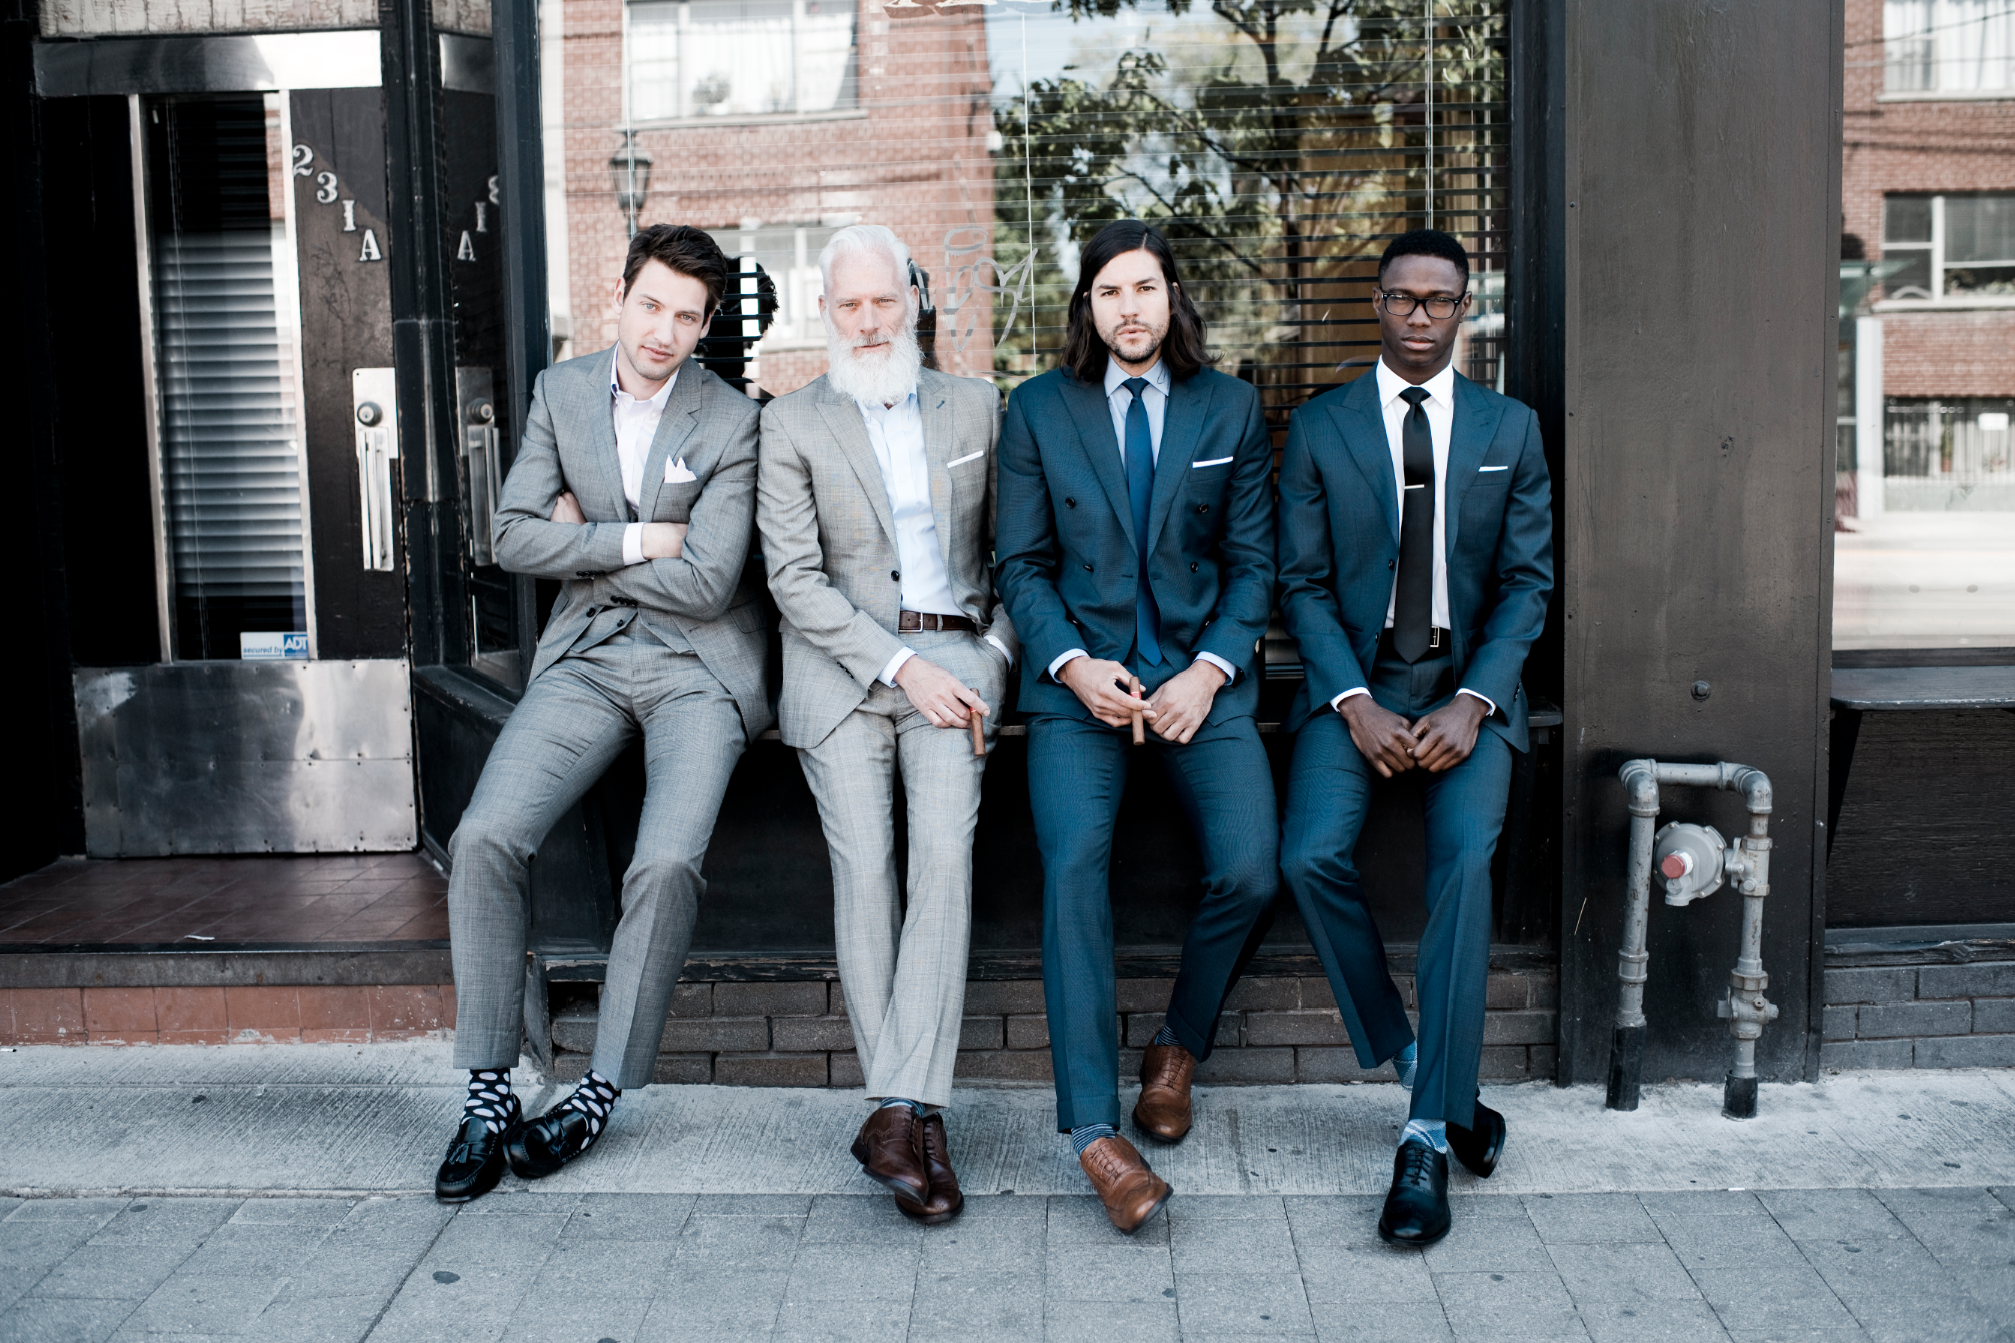 Enter Now to Win a Premium Custom Suit and Three Custom